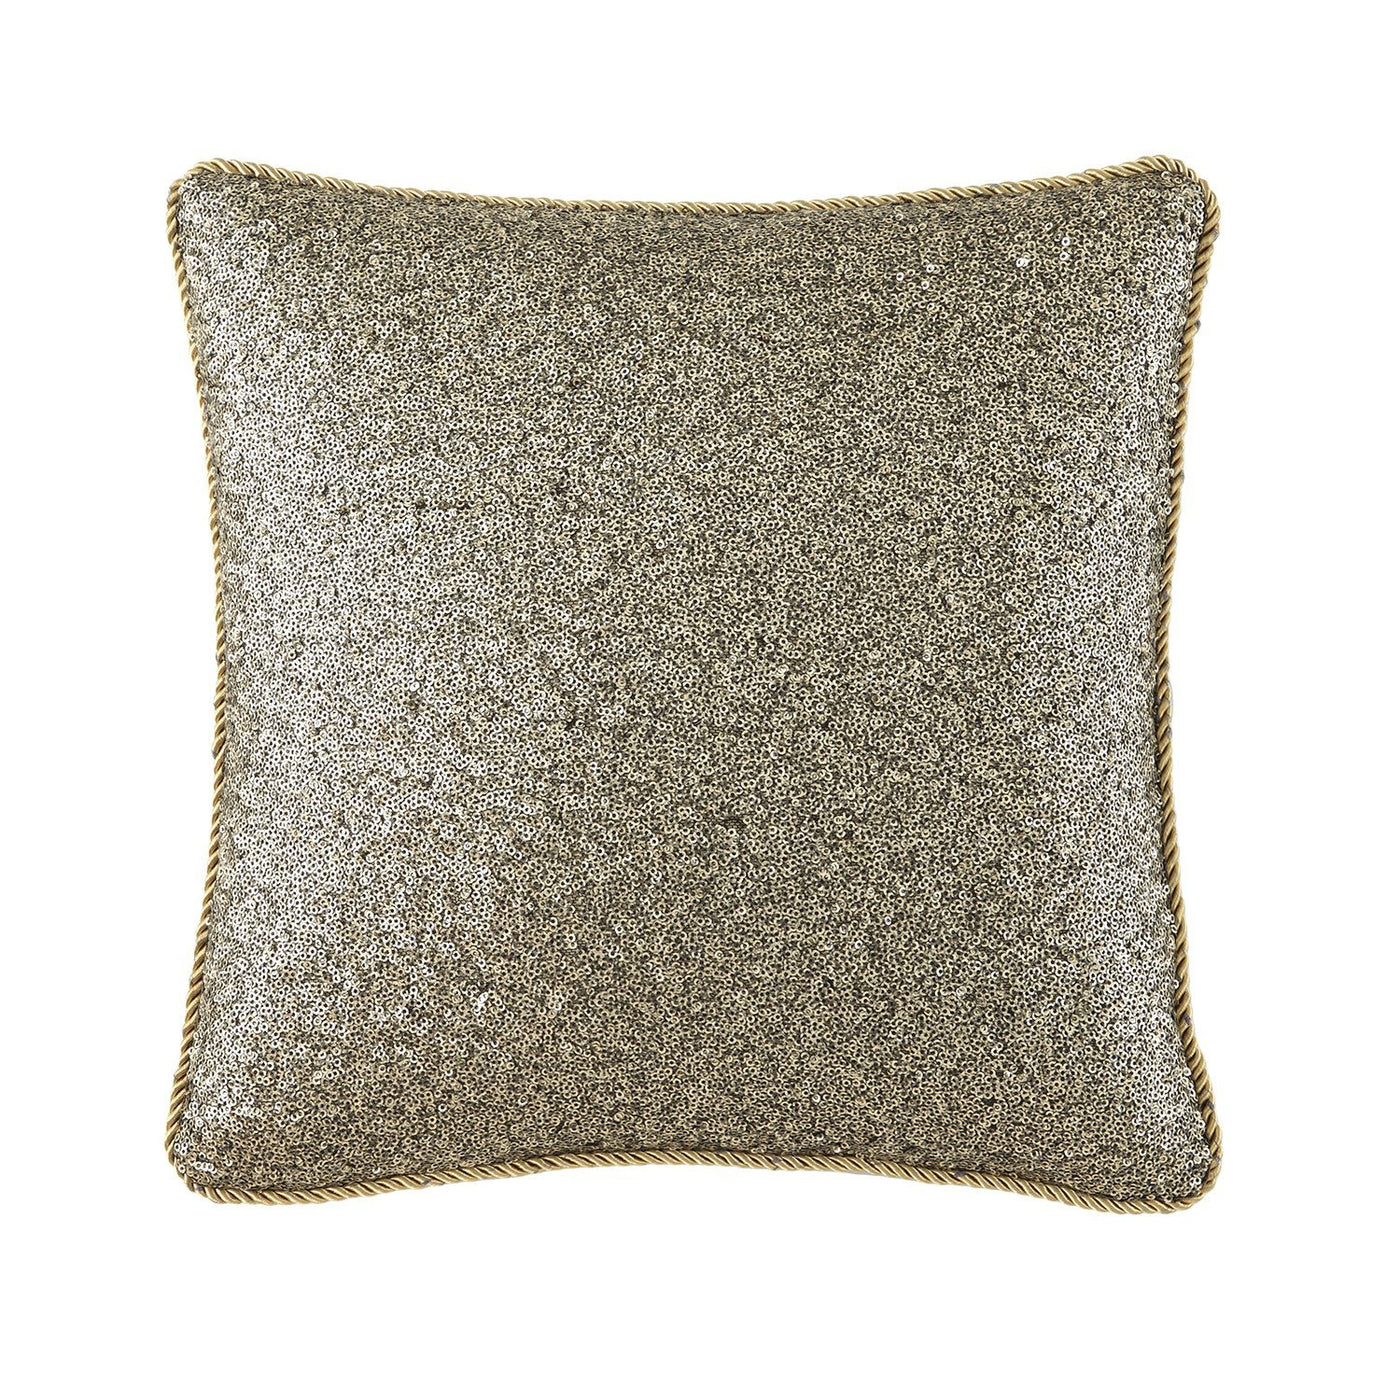 Vaughn Navygold Decorative Pillow 14 X 14 By Waterford